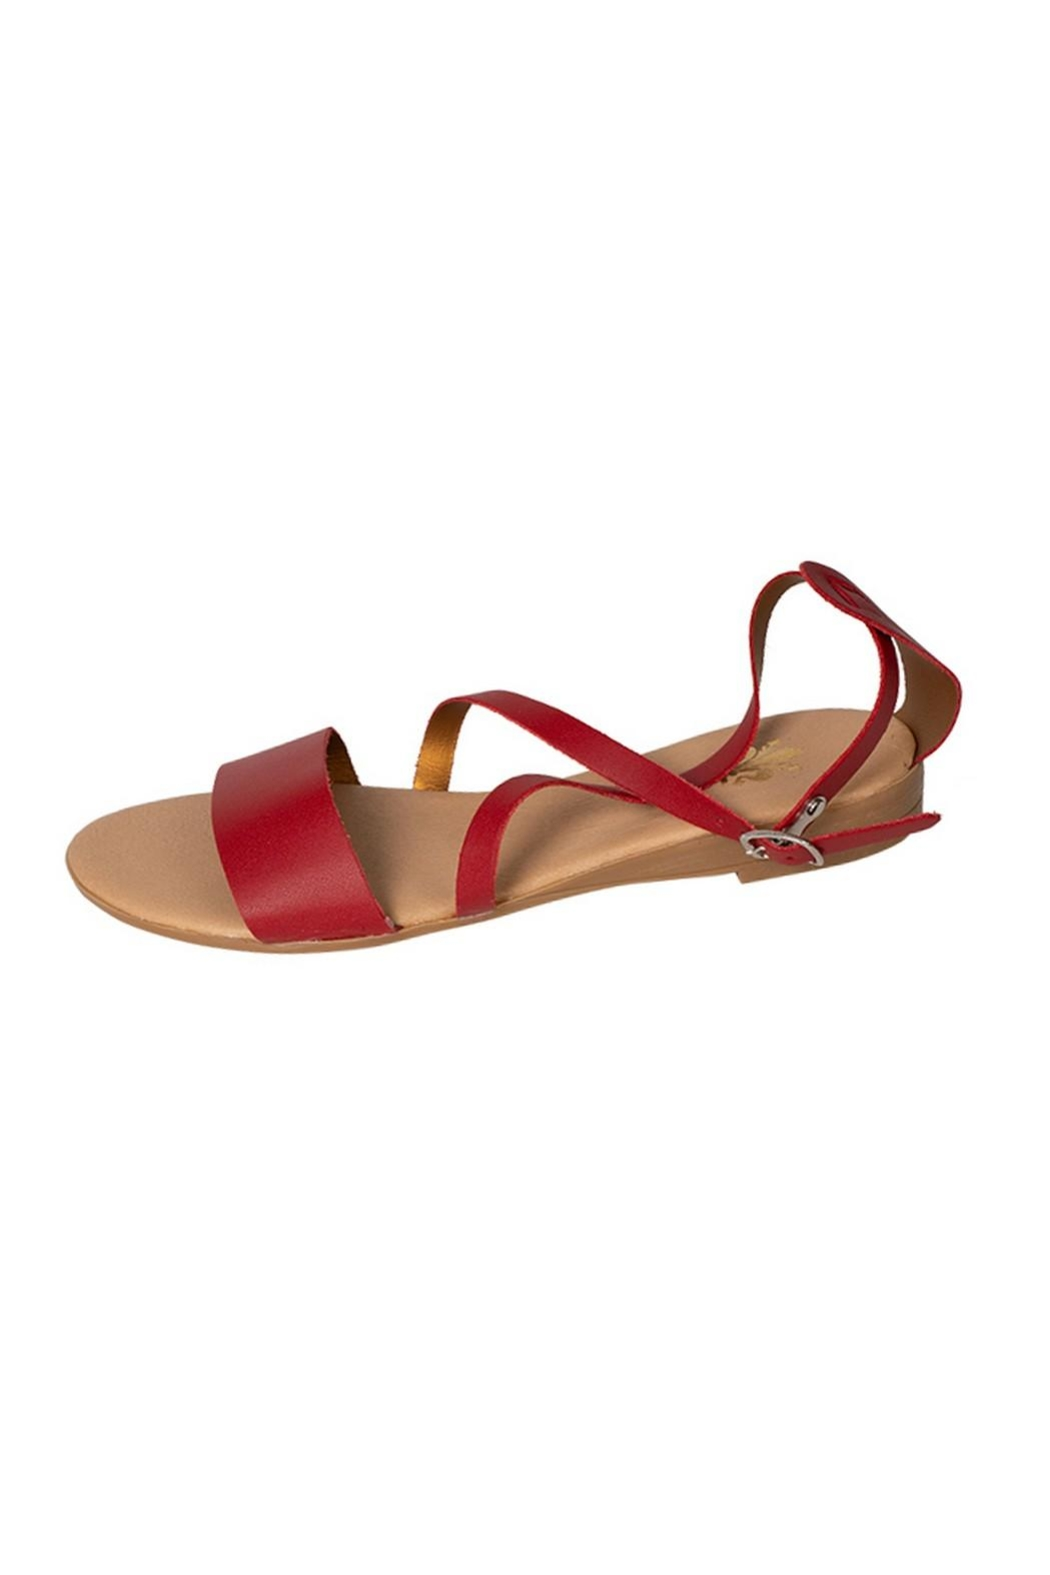 Firenze Red Leather Sandal - Main Image